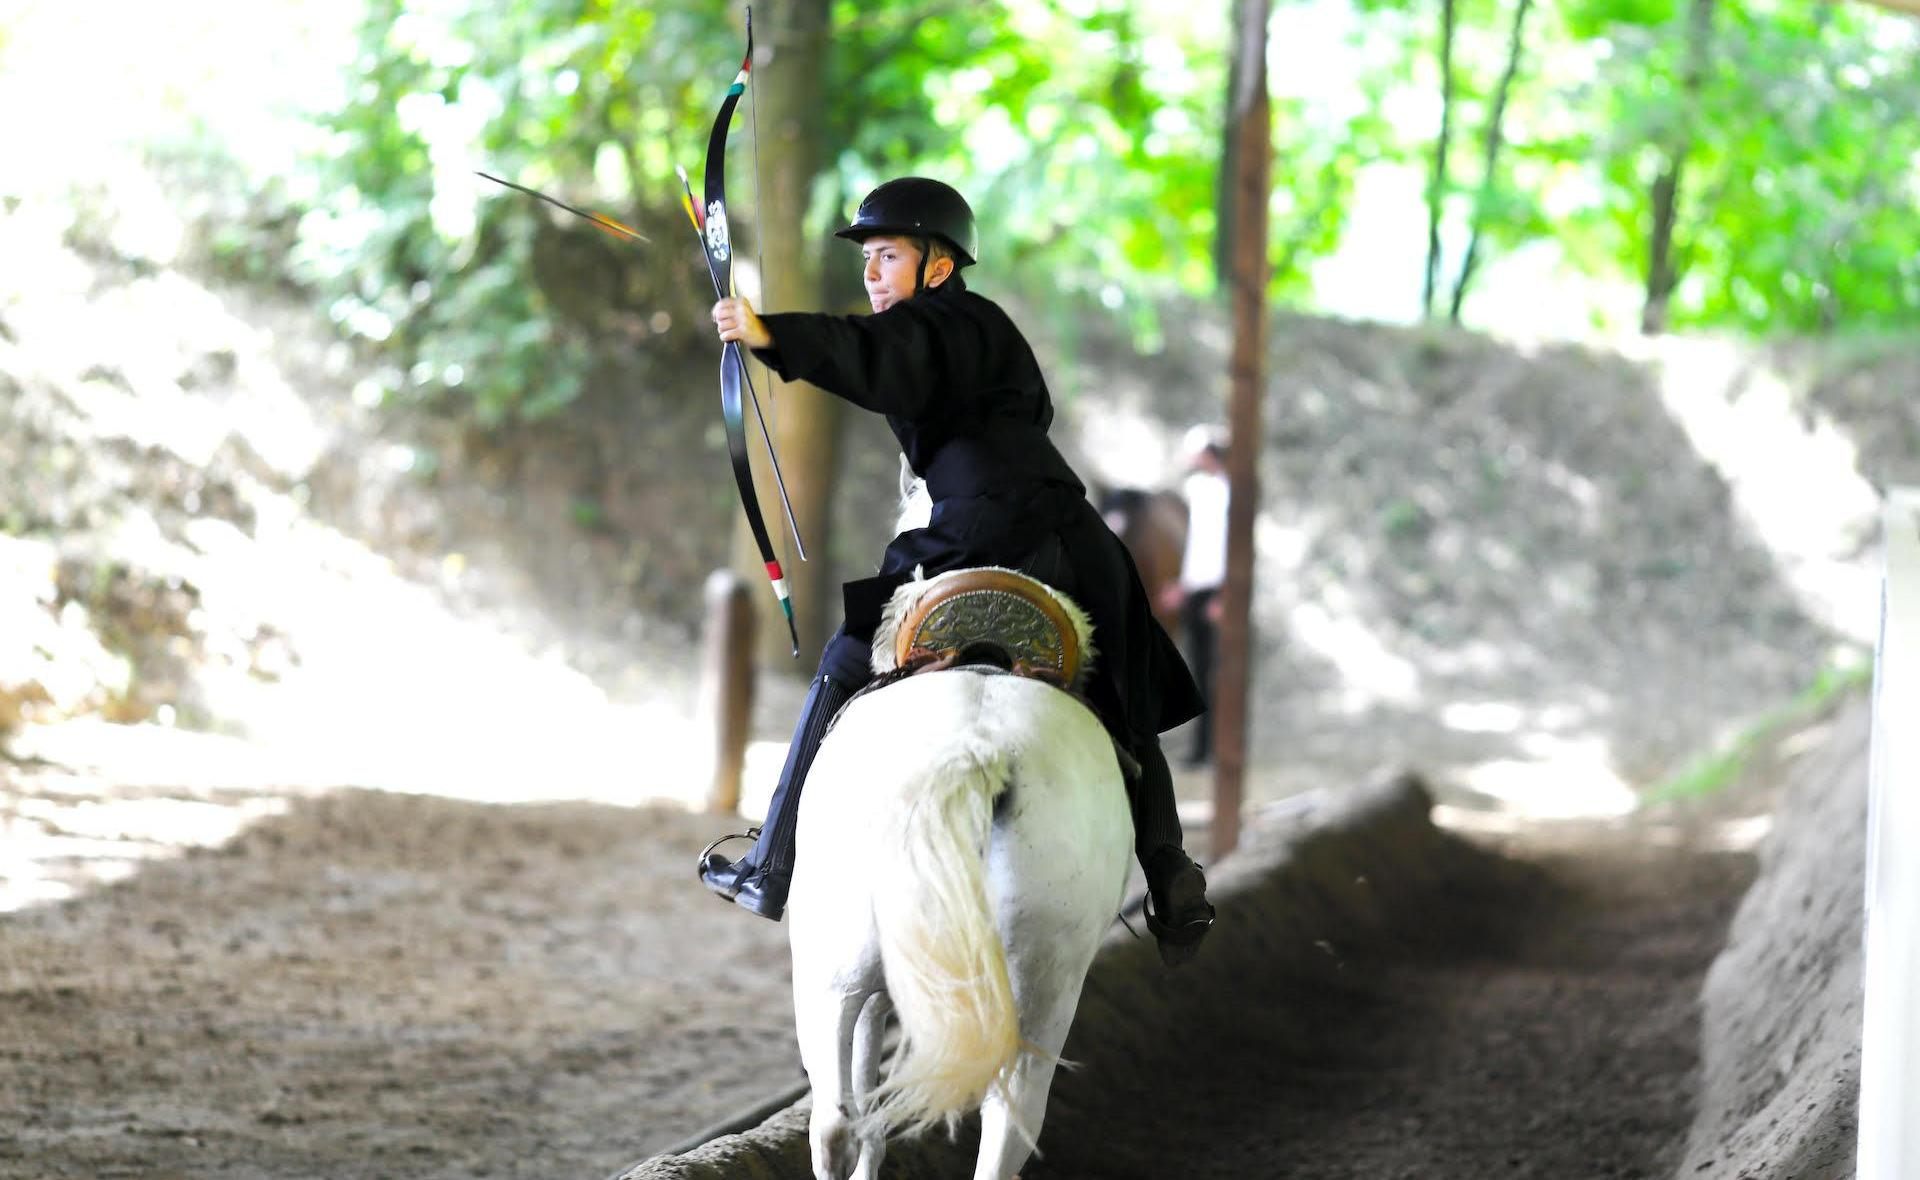 7 August marks World Day of Equestrian Archery